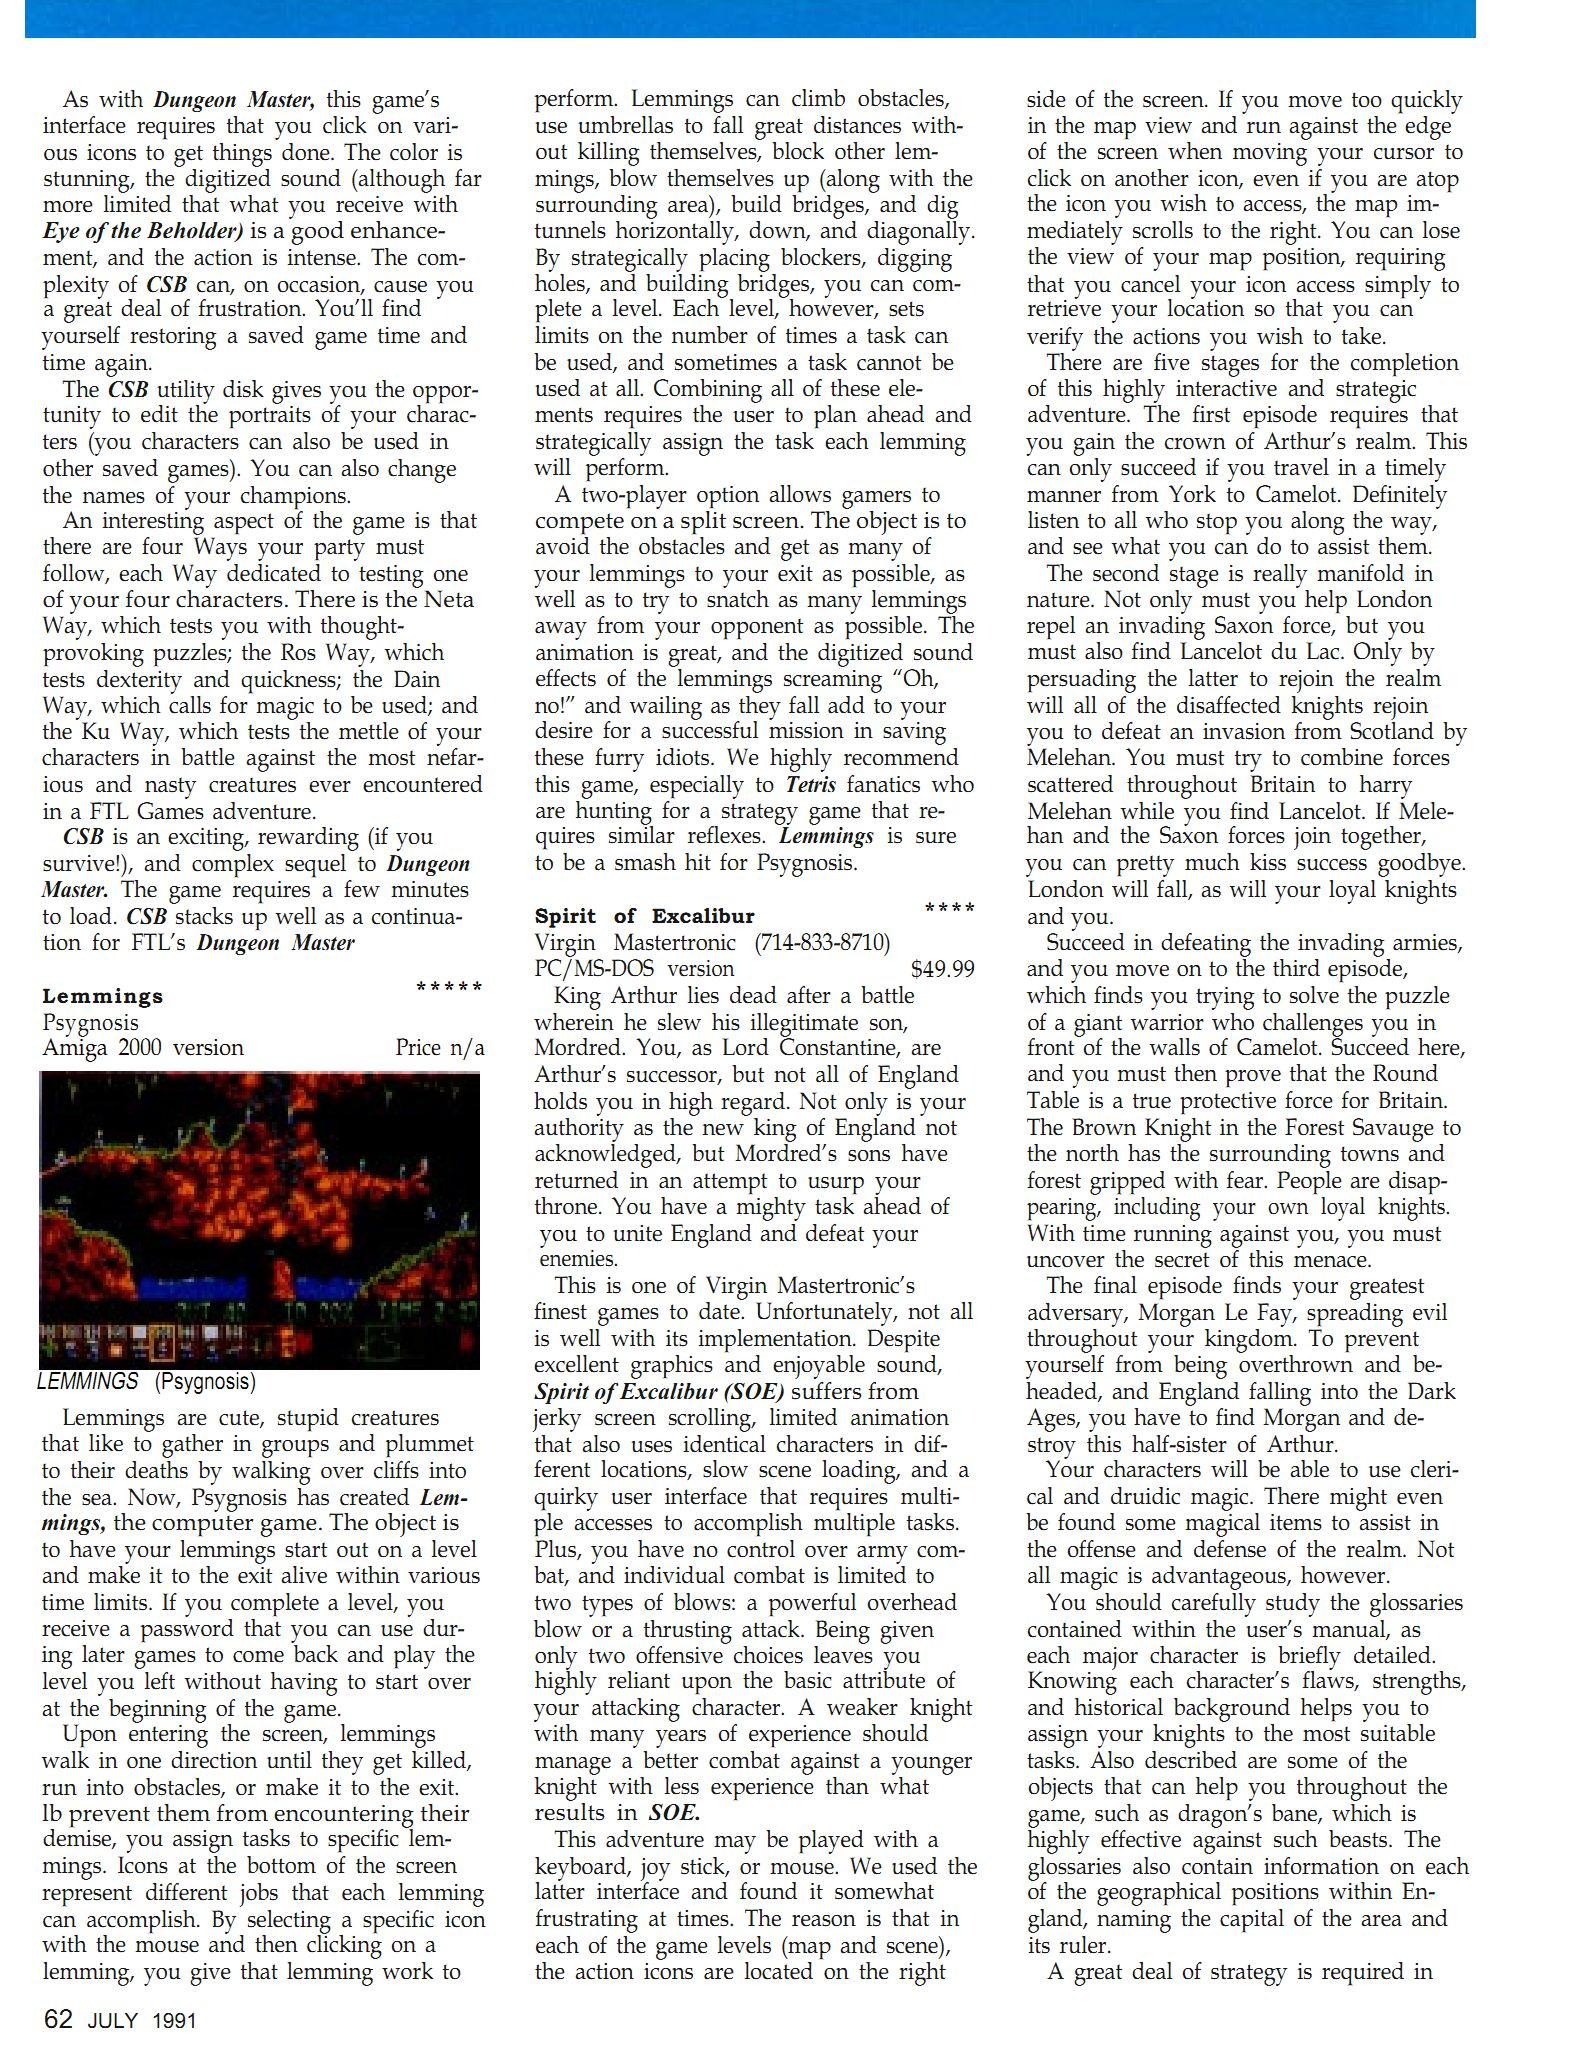 Chaos Strikes Back Review published in British-American magazine 'Dragon Magazine', Issue #171 Vol XVI No 2 July 1991, Page 62